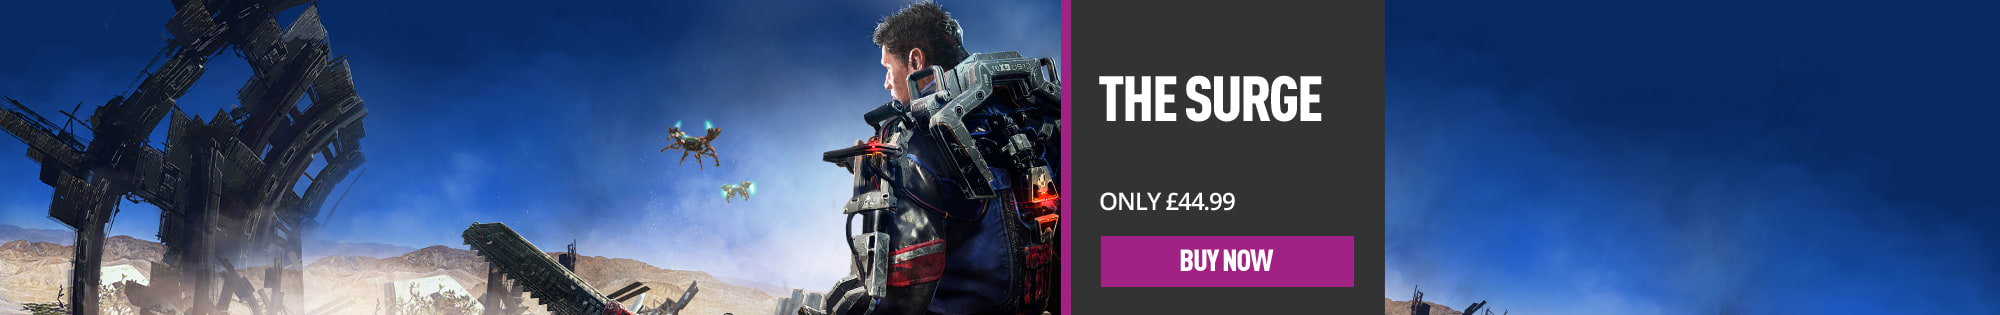 The Surge for PlayStation 4 & Xbox One - Homepage banner